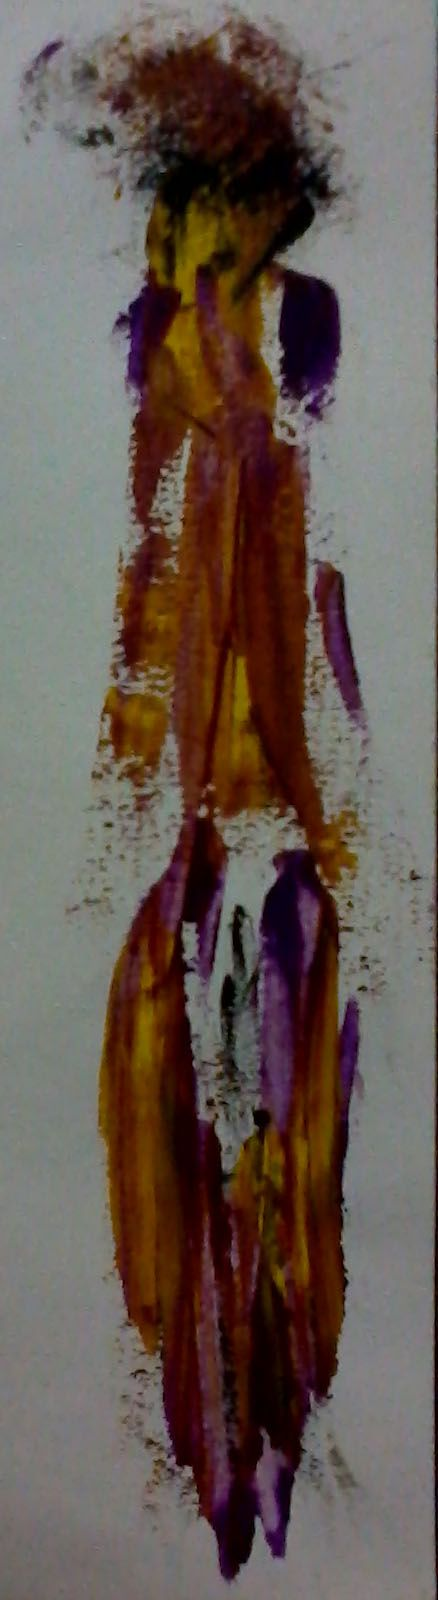 my painting 5